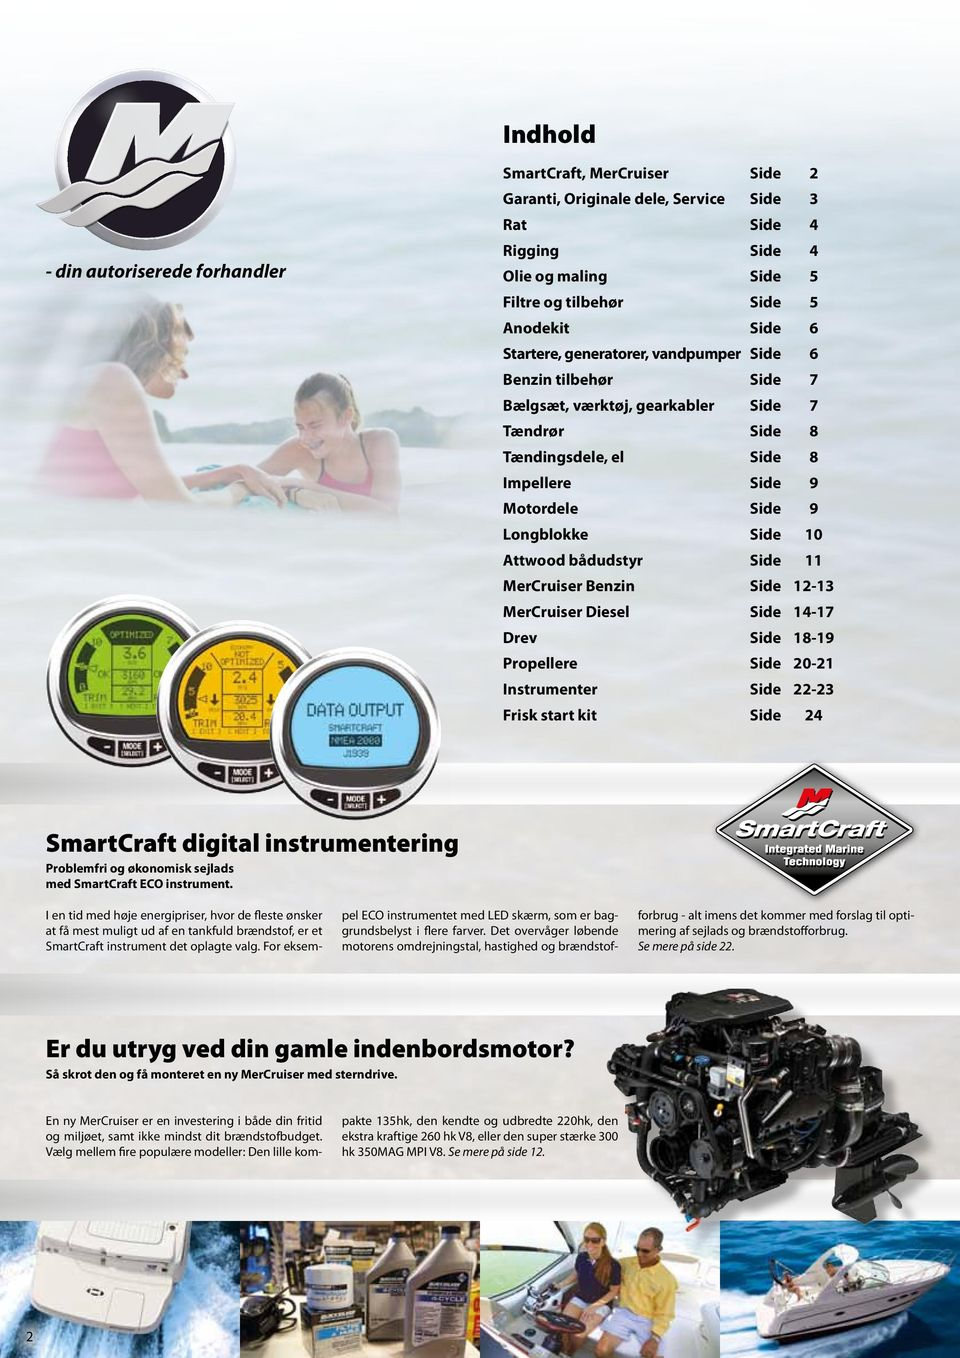 Side MerCruiser Benzin Side - MerCruiser Diesel Side -7 Drev Side 8-9 Propellere Side 0- Instrumenter Side - Frisk start kit Side SmartCraft digital instrumentering Problemfri og økonomisk sejlads